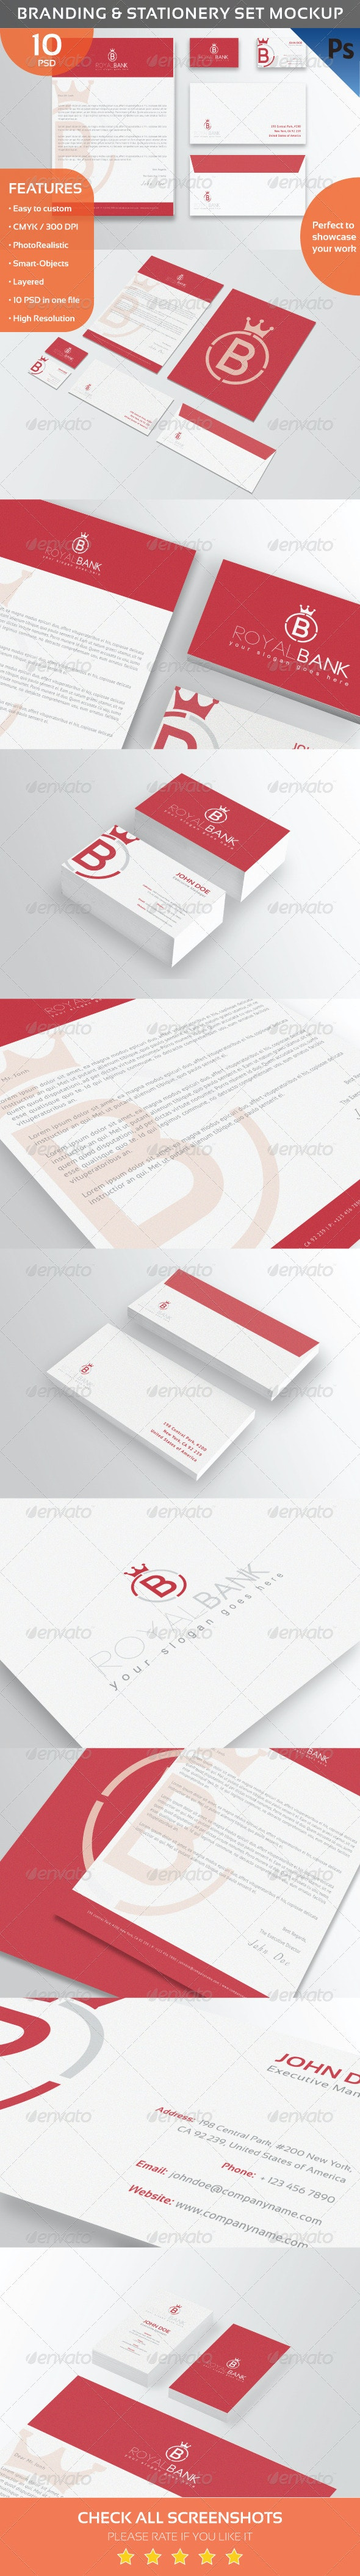 Branding & Stationery Set Mockup - Stationery Print